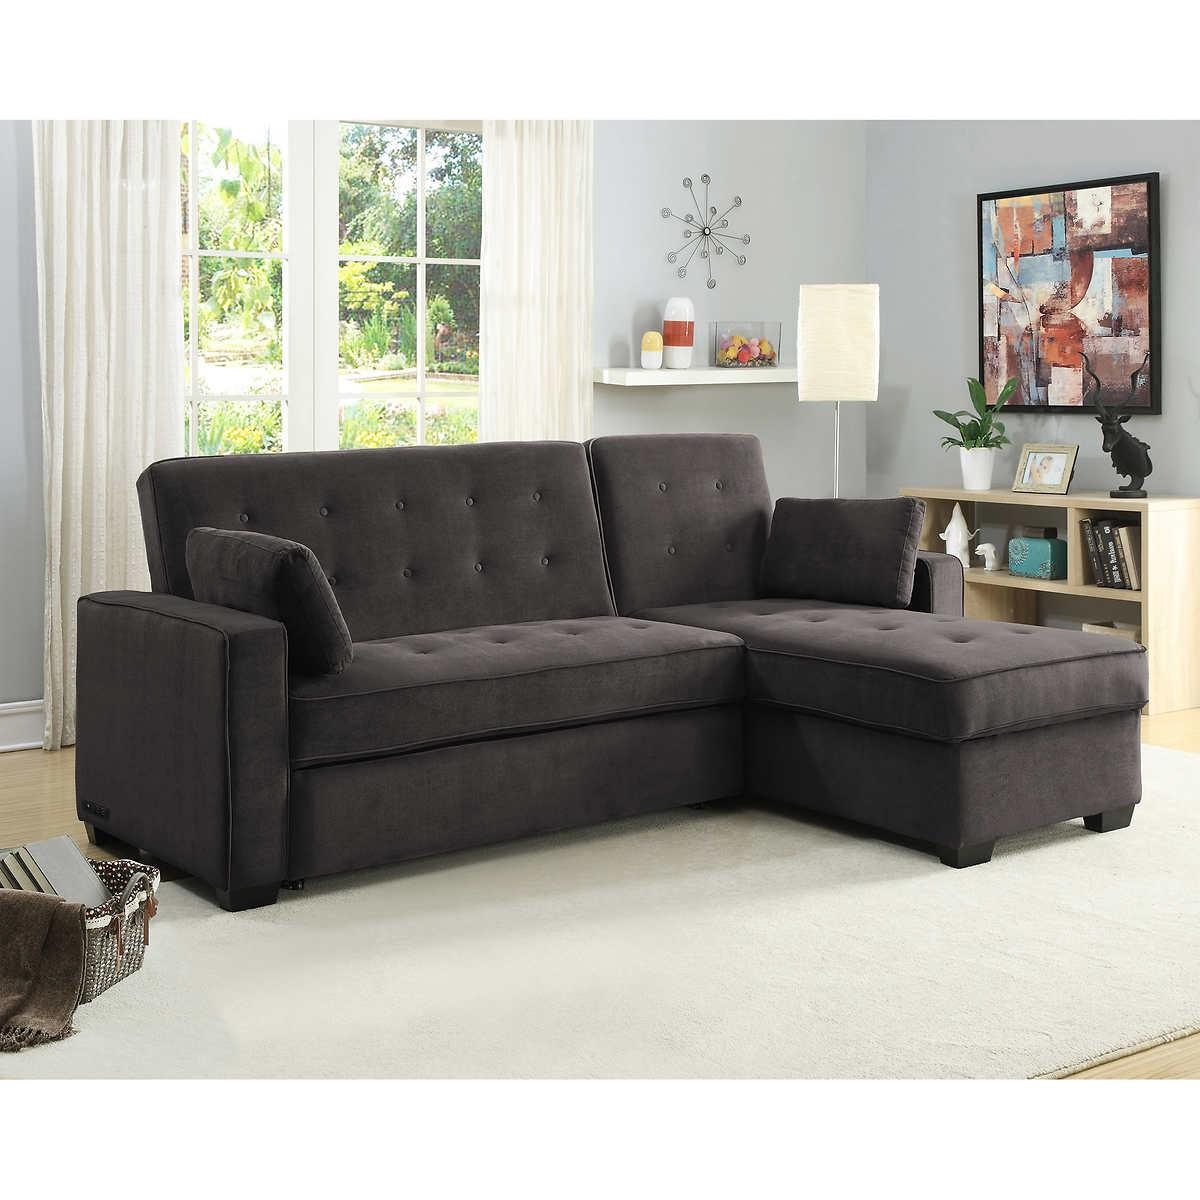 Sofas Center : Berkline Reclining Sofa Costco Cosco Sofas Power In Berkline Reclining Sofas (Image 7 of 20)